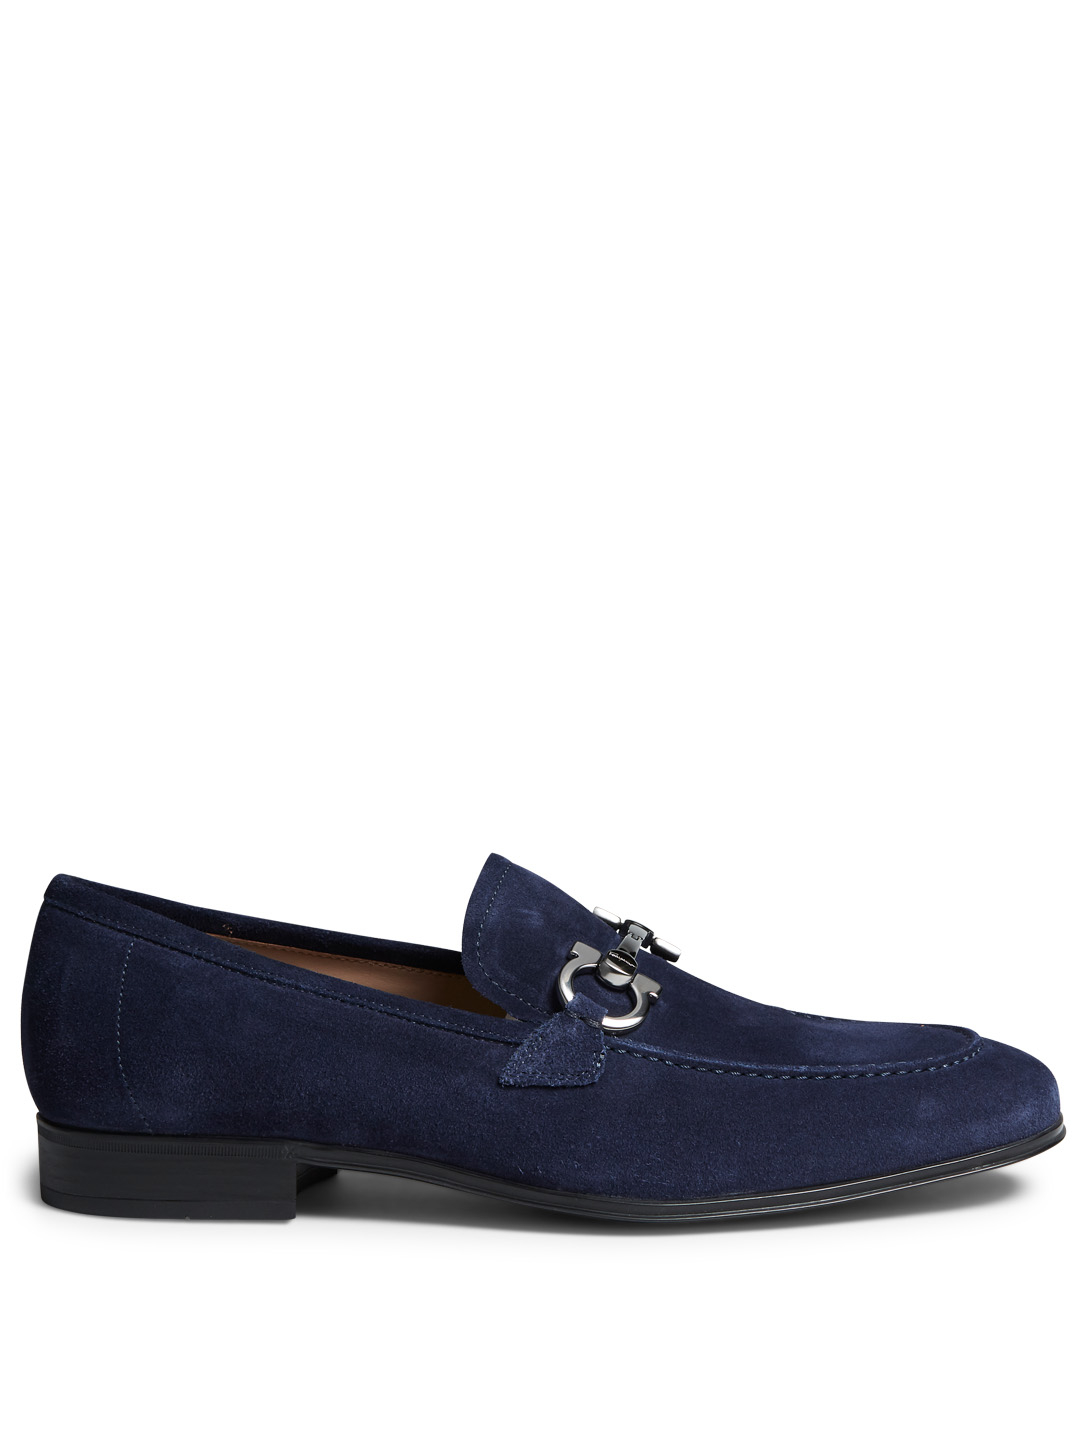 SALVATORE FERRAGAMO Flori 2 Gancio Suede Loafers Men's Blue